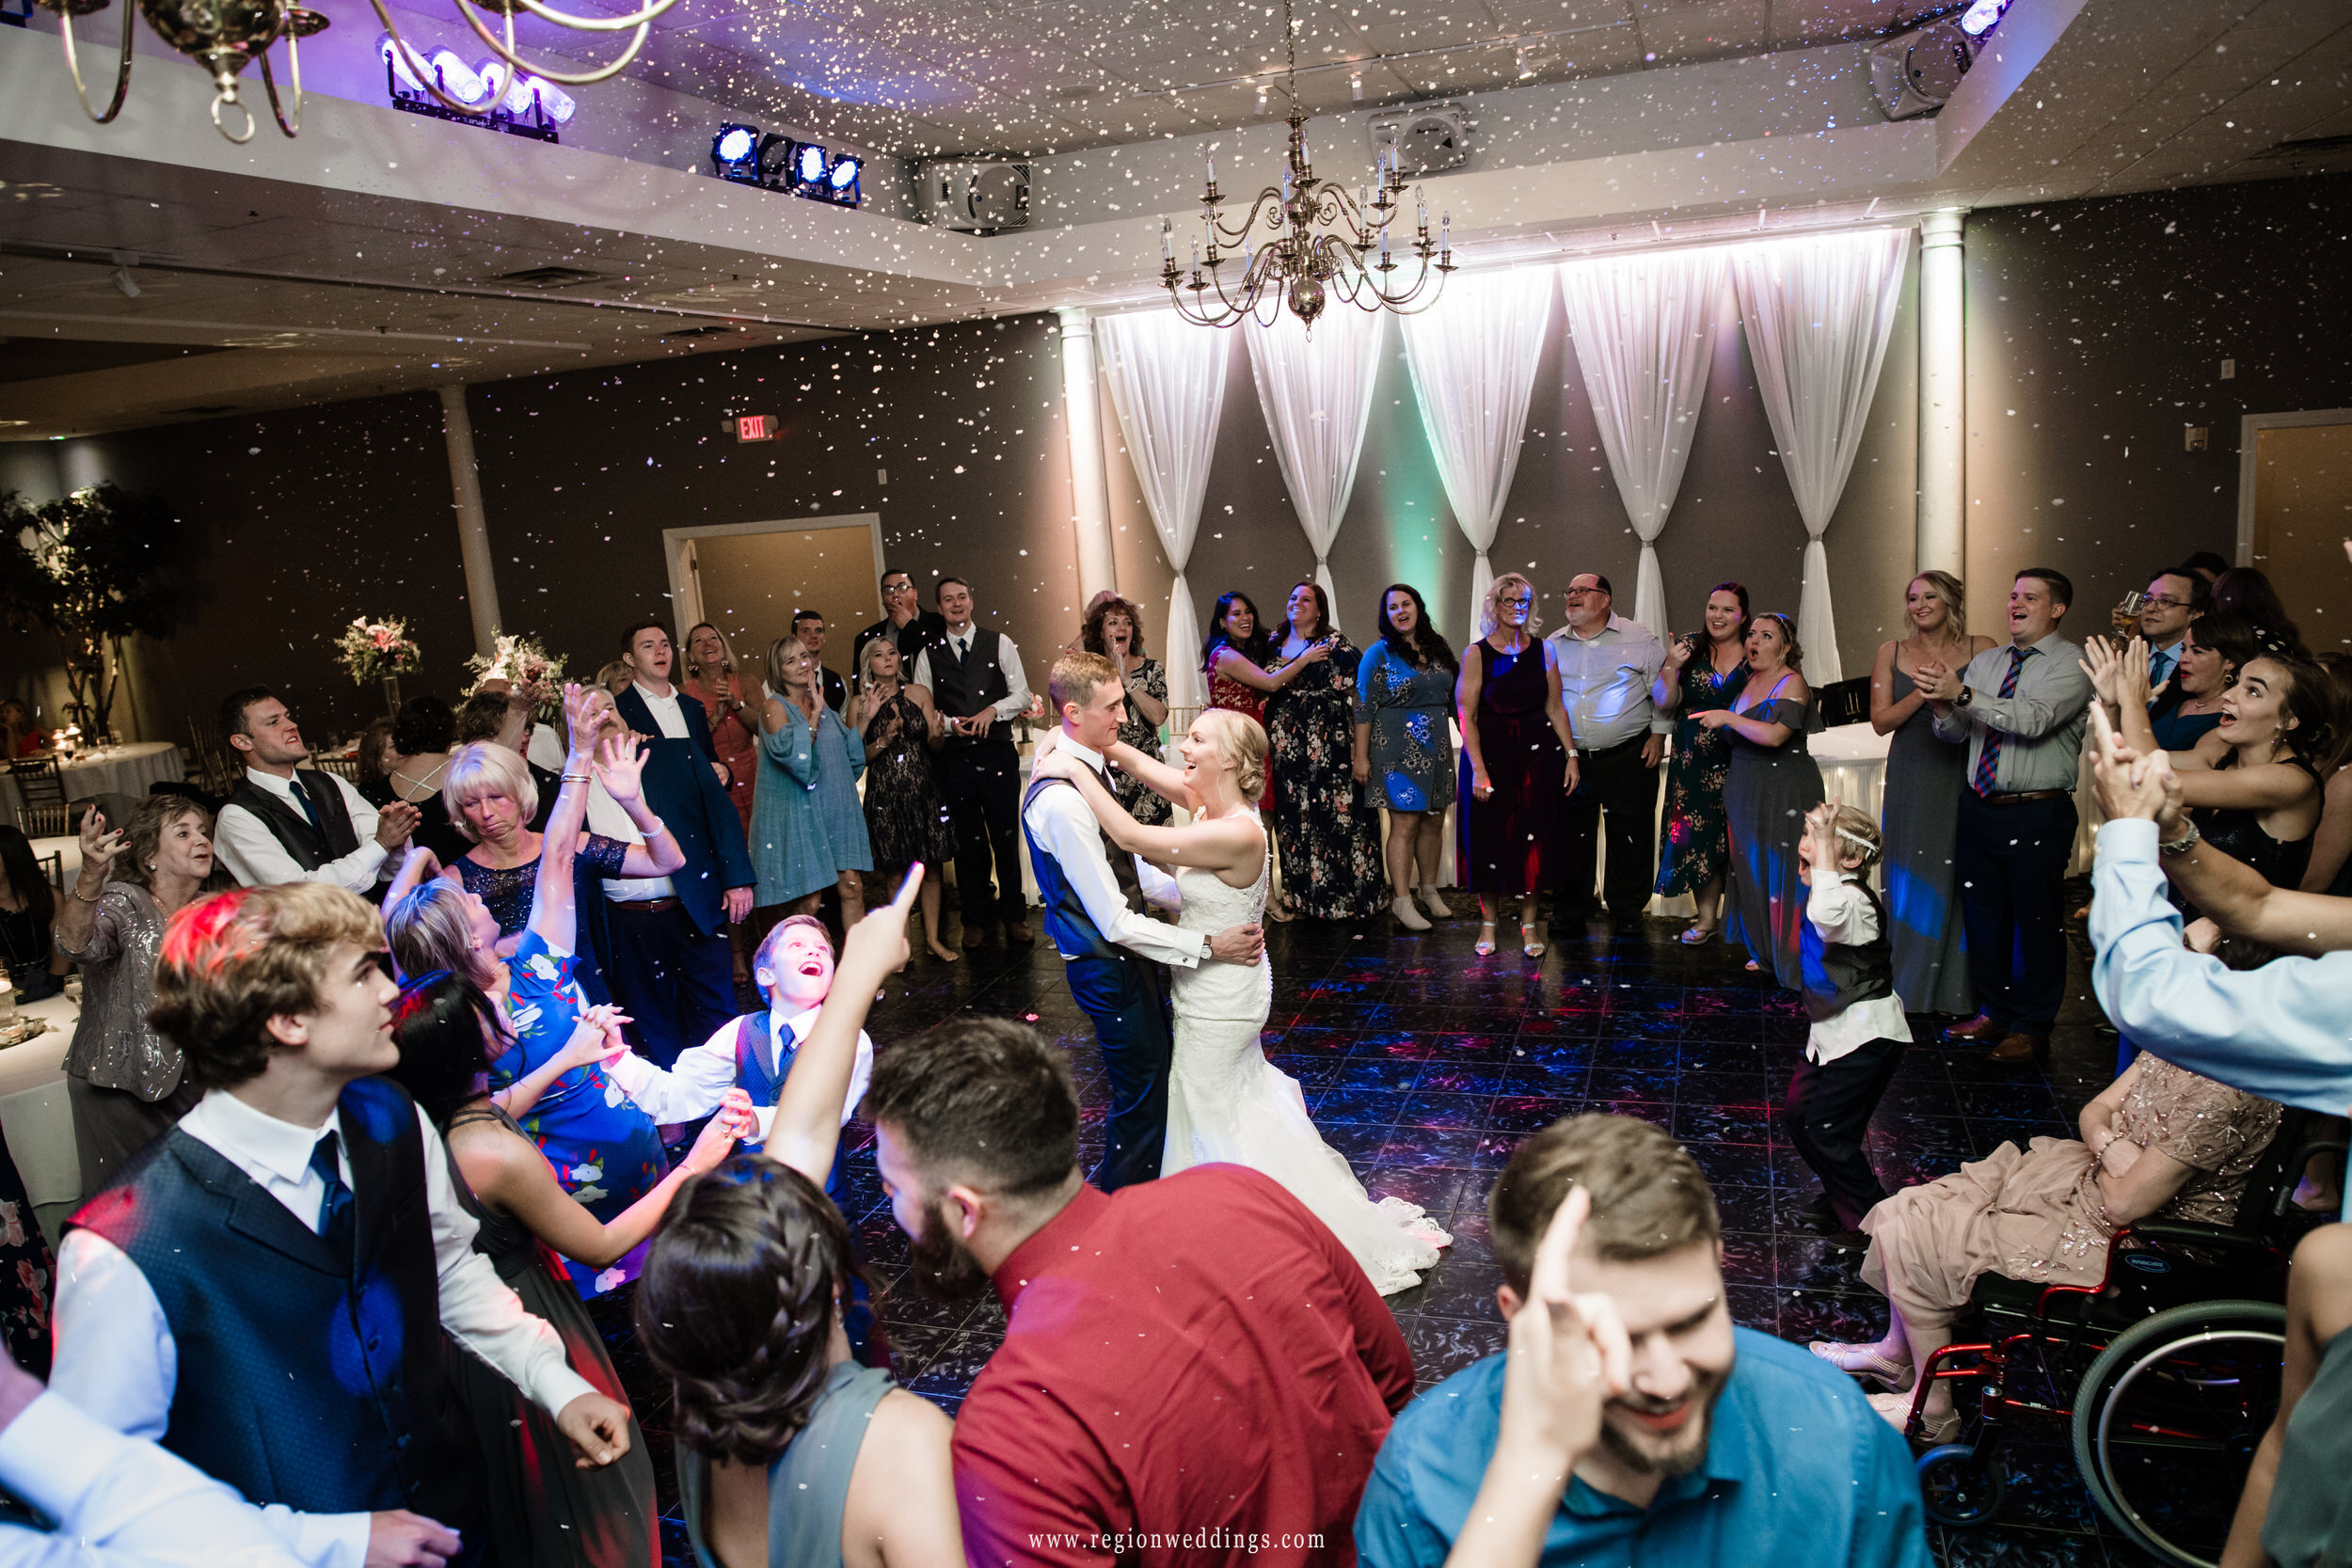 Snow hits the dance floor during a wedding reception at Aberdeen Manor Ballroom.